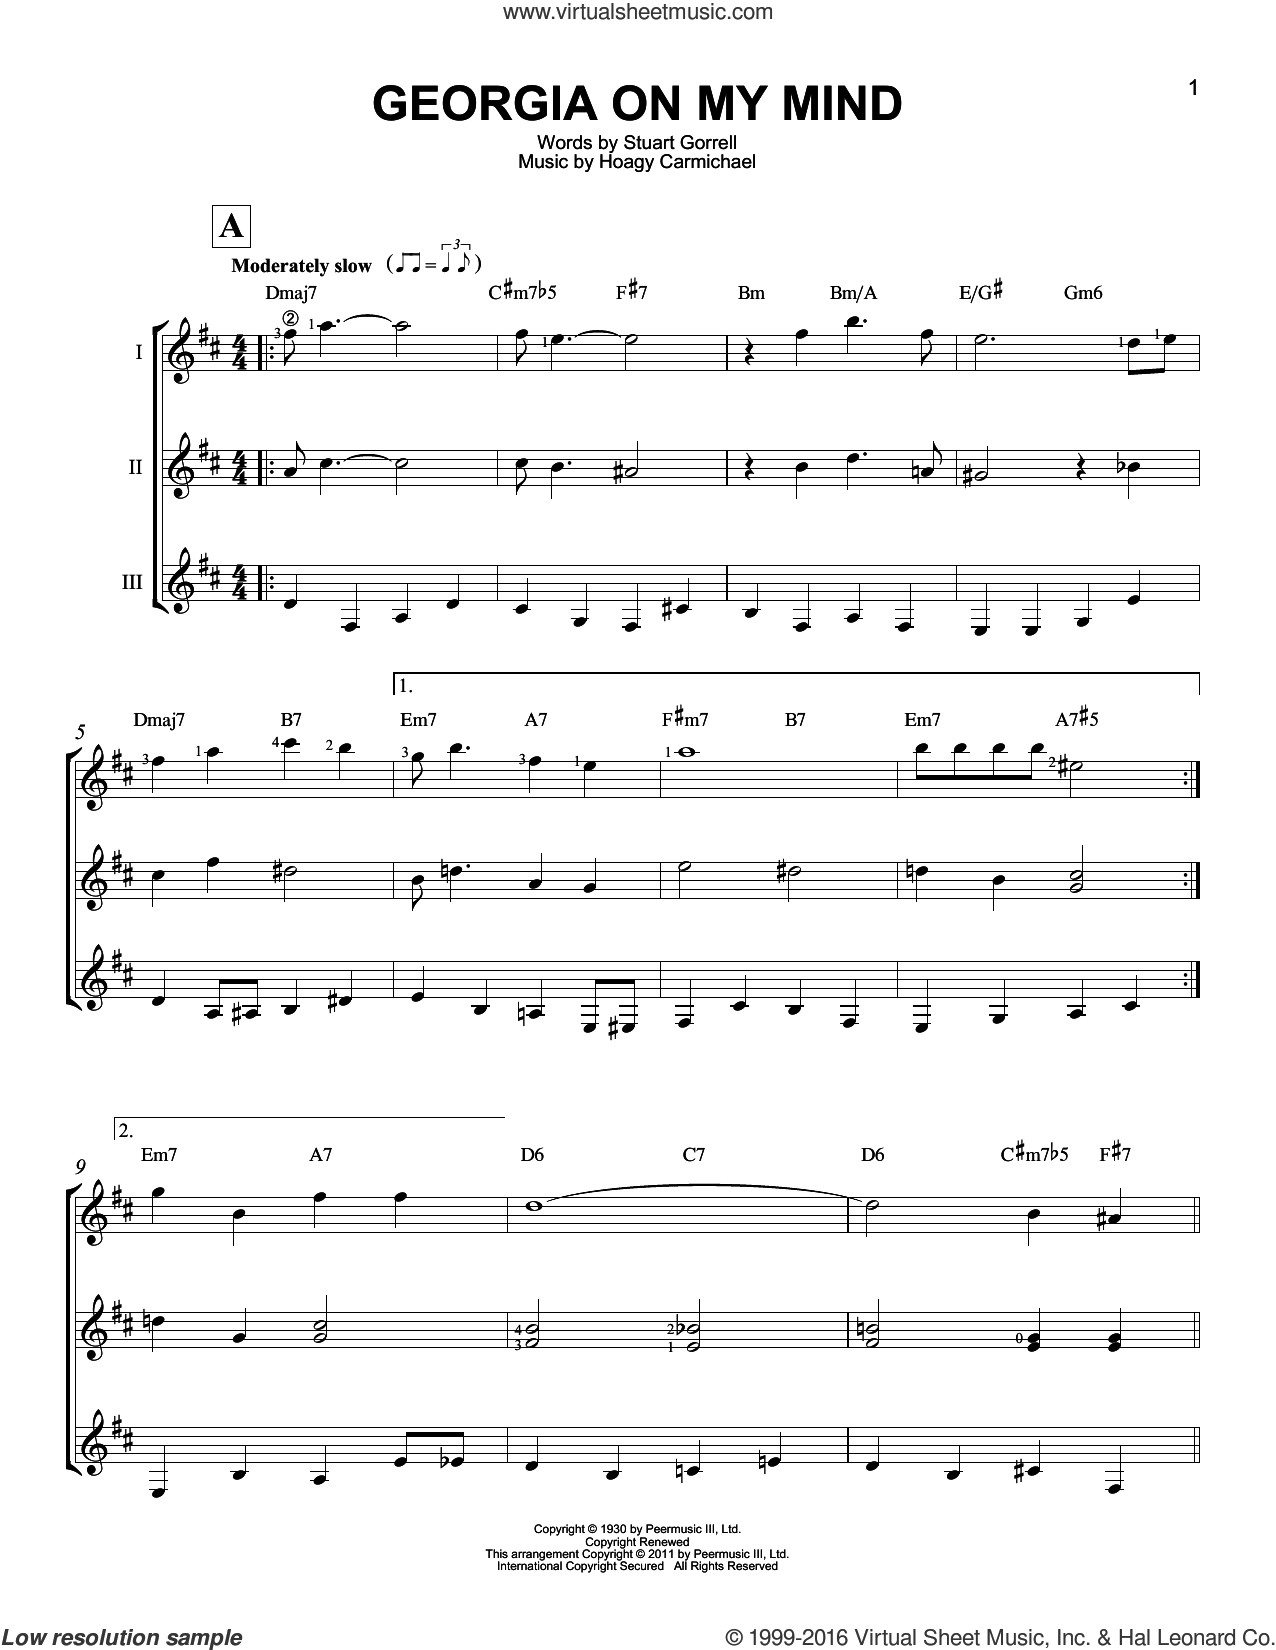 Georgia On My Mind sheet music for guitar ensemble by Stuart Gorrell, Ray Charles, Willie Nelson and Hoagy Carmichael. Score Image Preview.